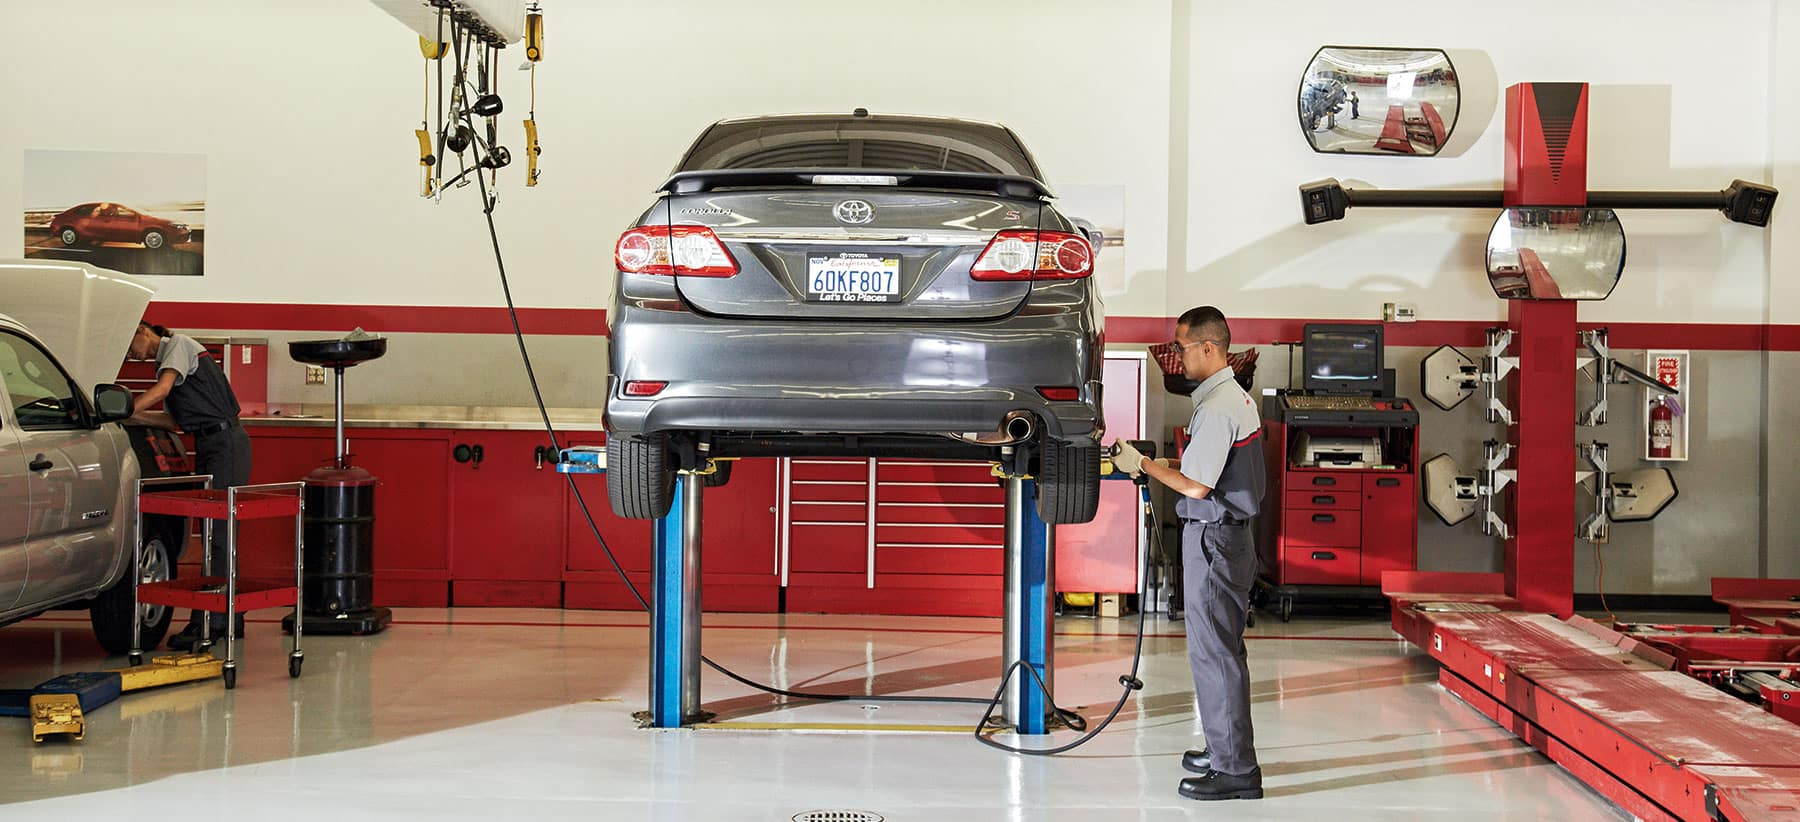 Enjoy the benefits of Andrew Care when you purchase an eligible used vehicle at Milwaukee's Andrew Toyota in Glendale.